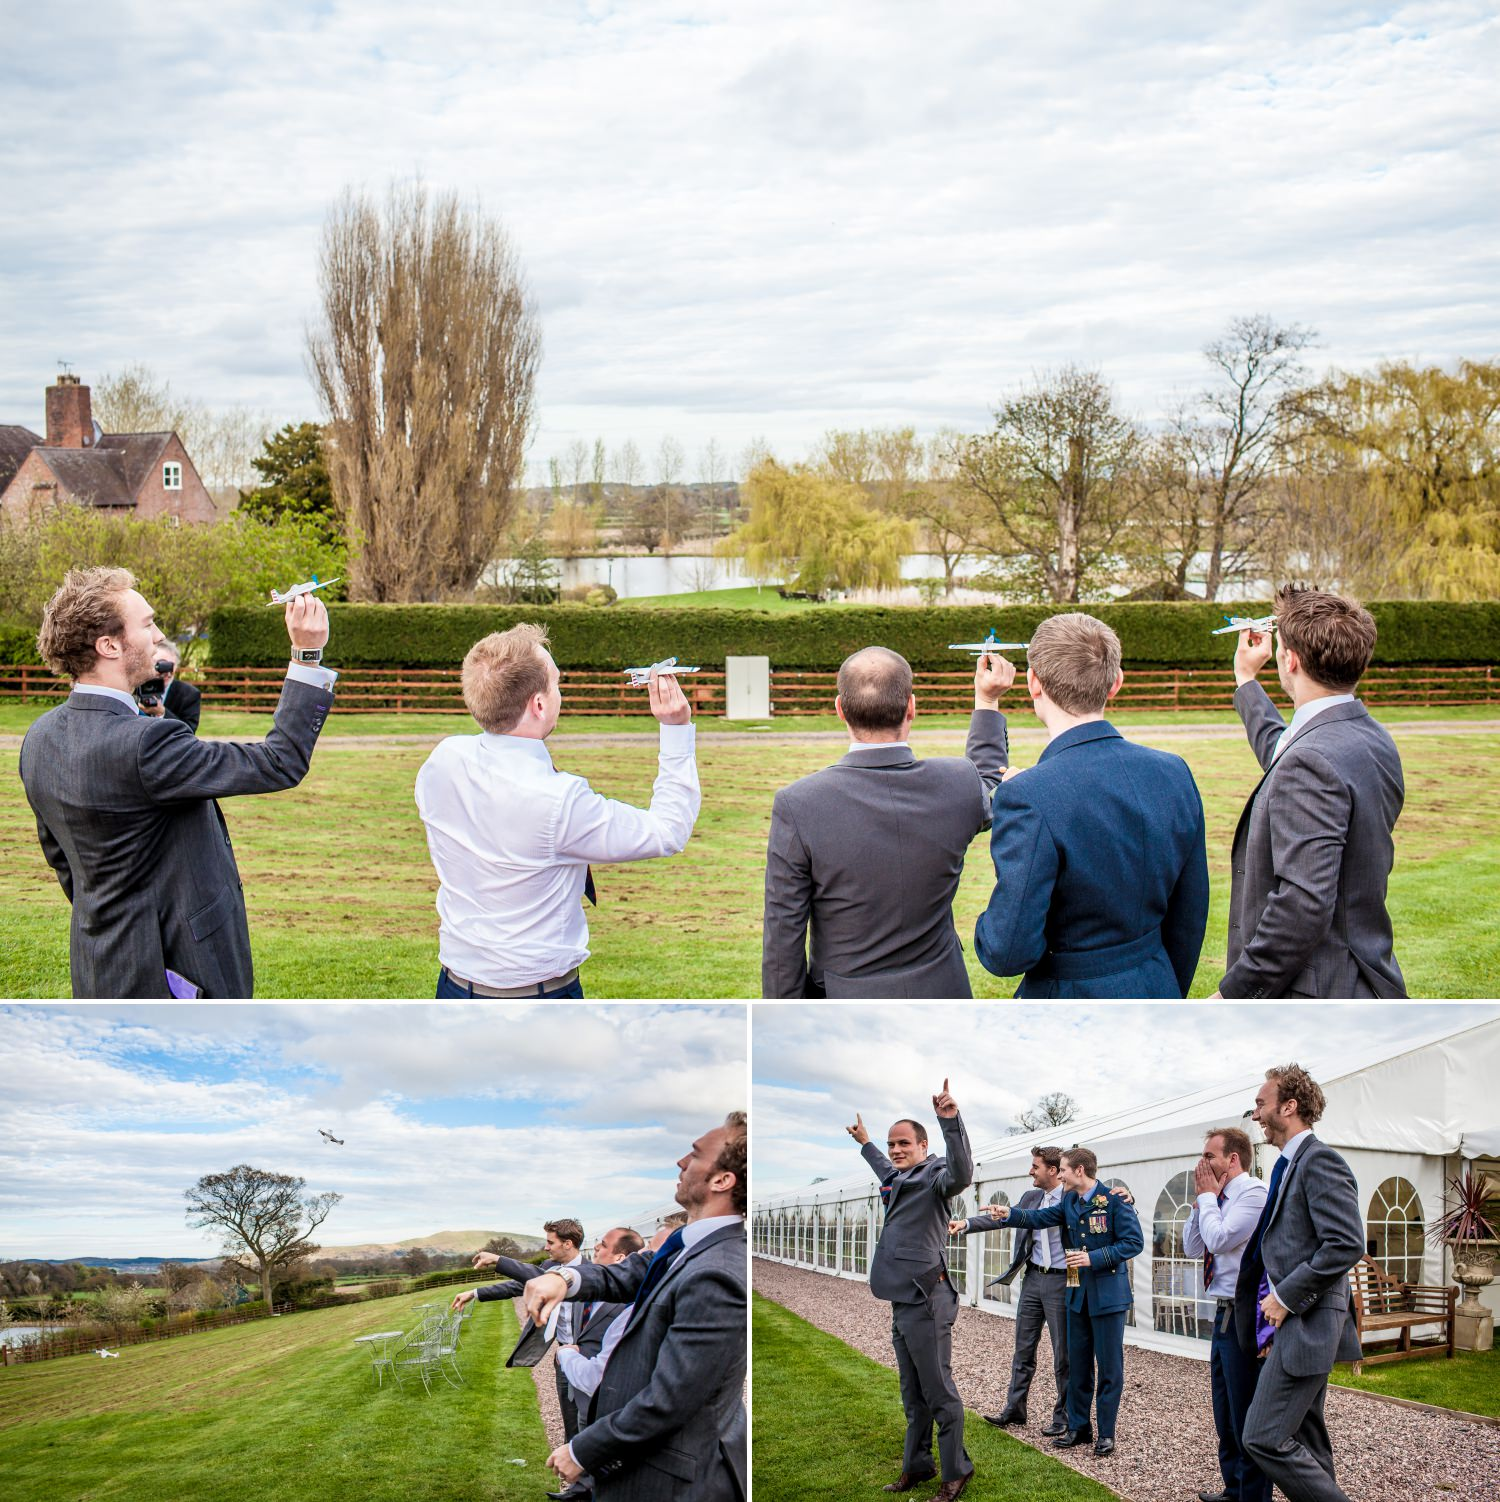 Weding Photography of  guests flying paper airplanes at Netley Hall, Shropshire